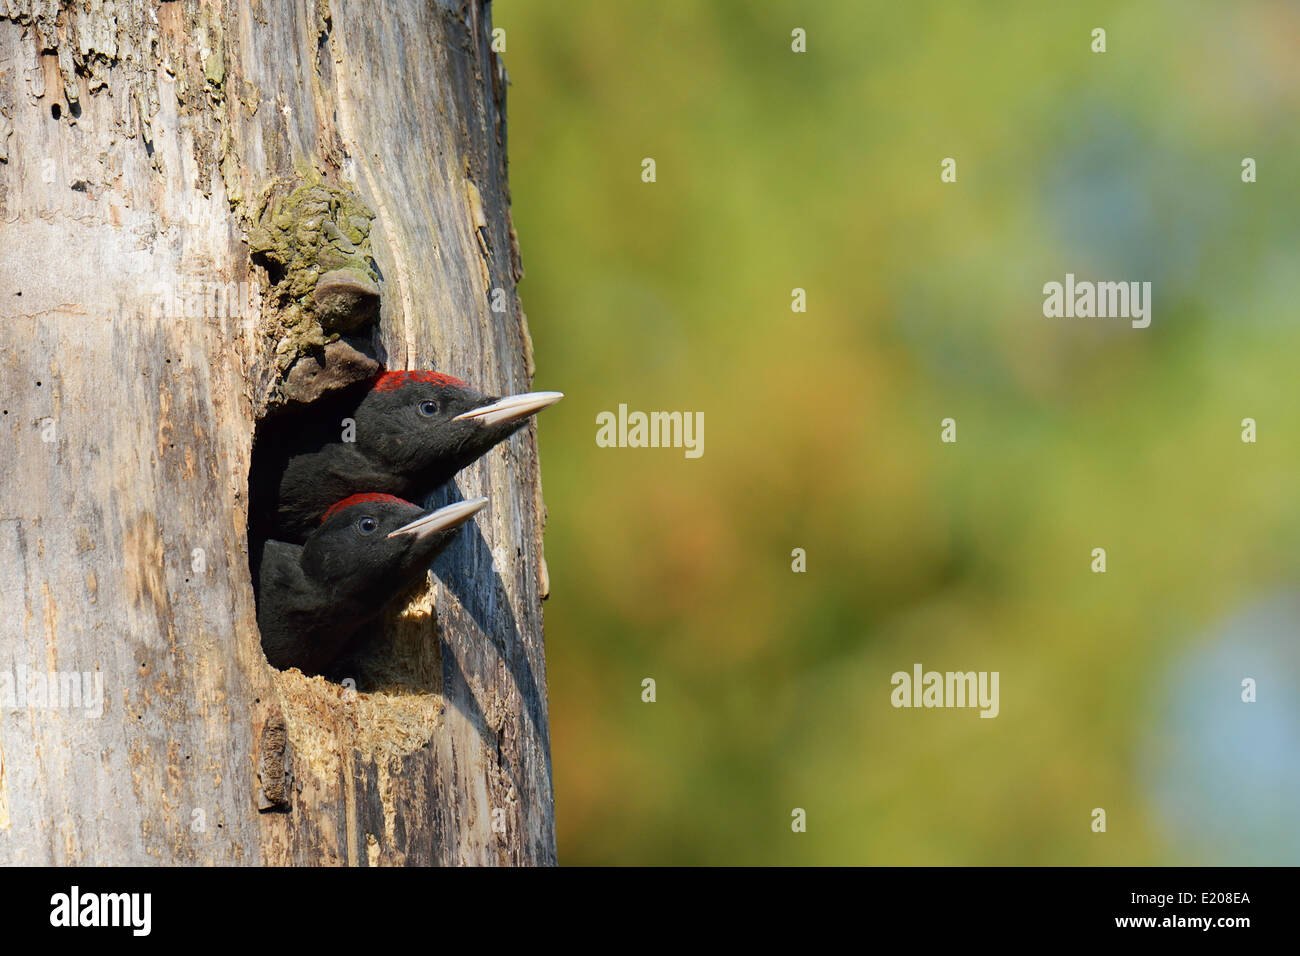 Two Black Woodpeckers (Dryocopus martius), young birds, looking out of the nest hole, Biebrza National Park, Poland - Stock Image